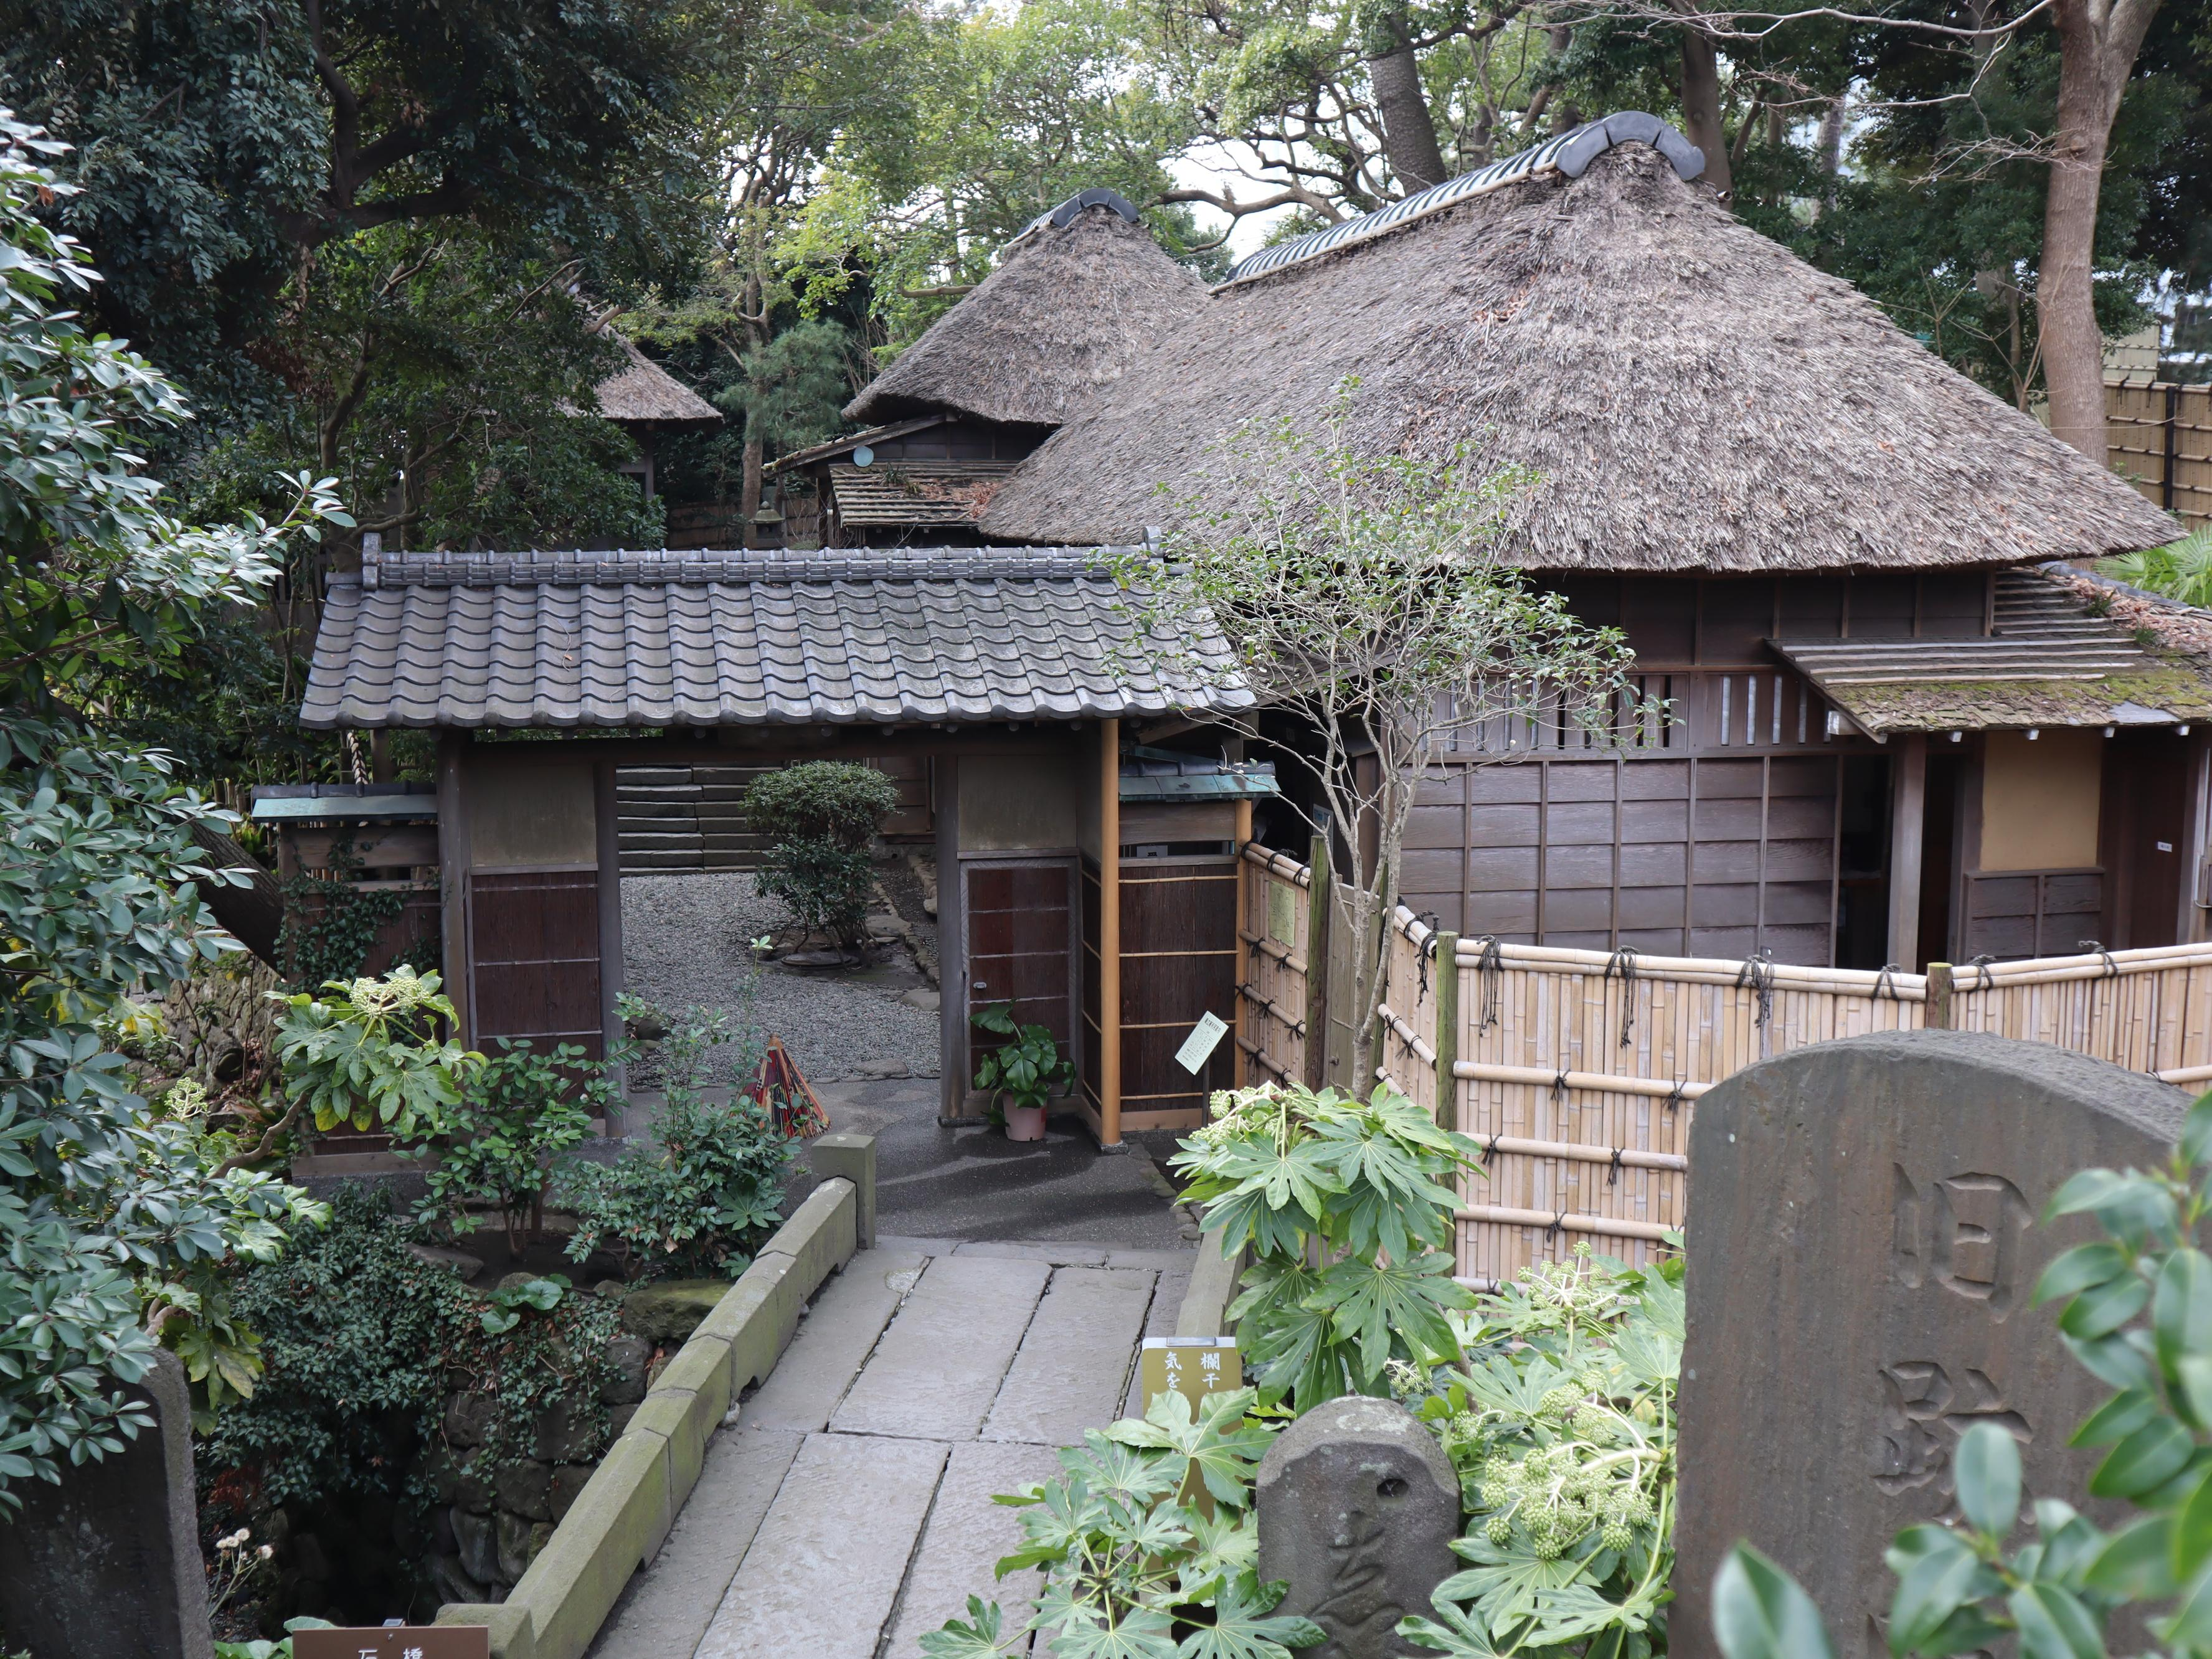 The birthplace of Shonan・Oiso town (Kanagawa)